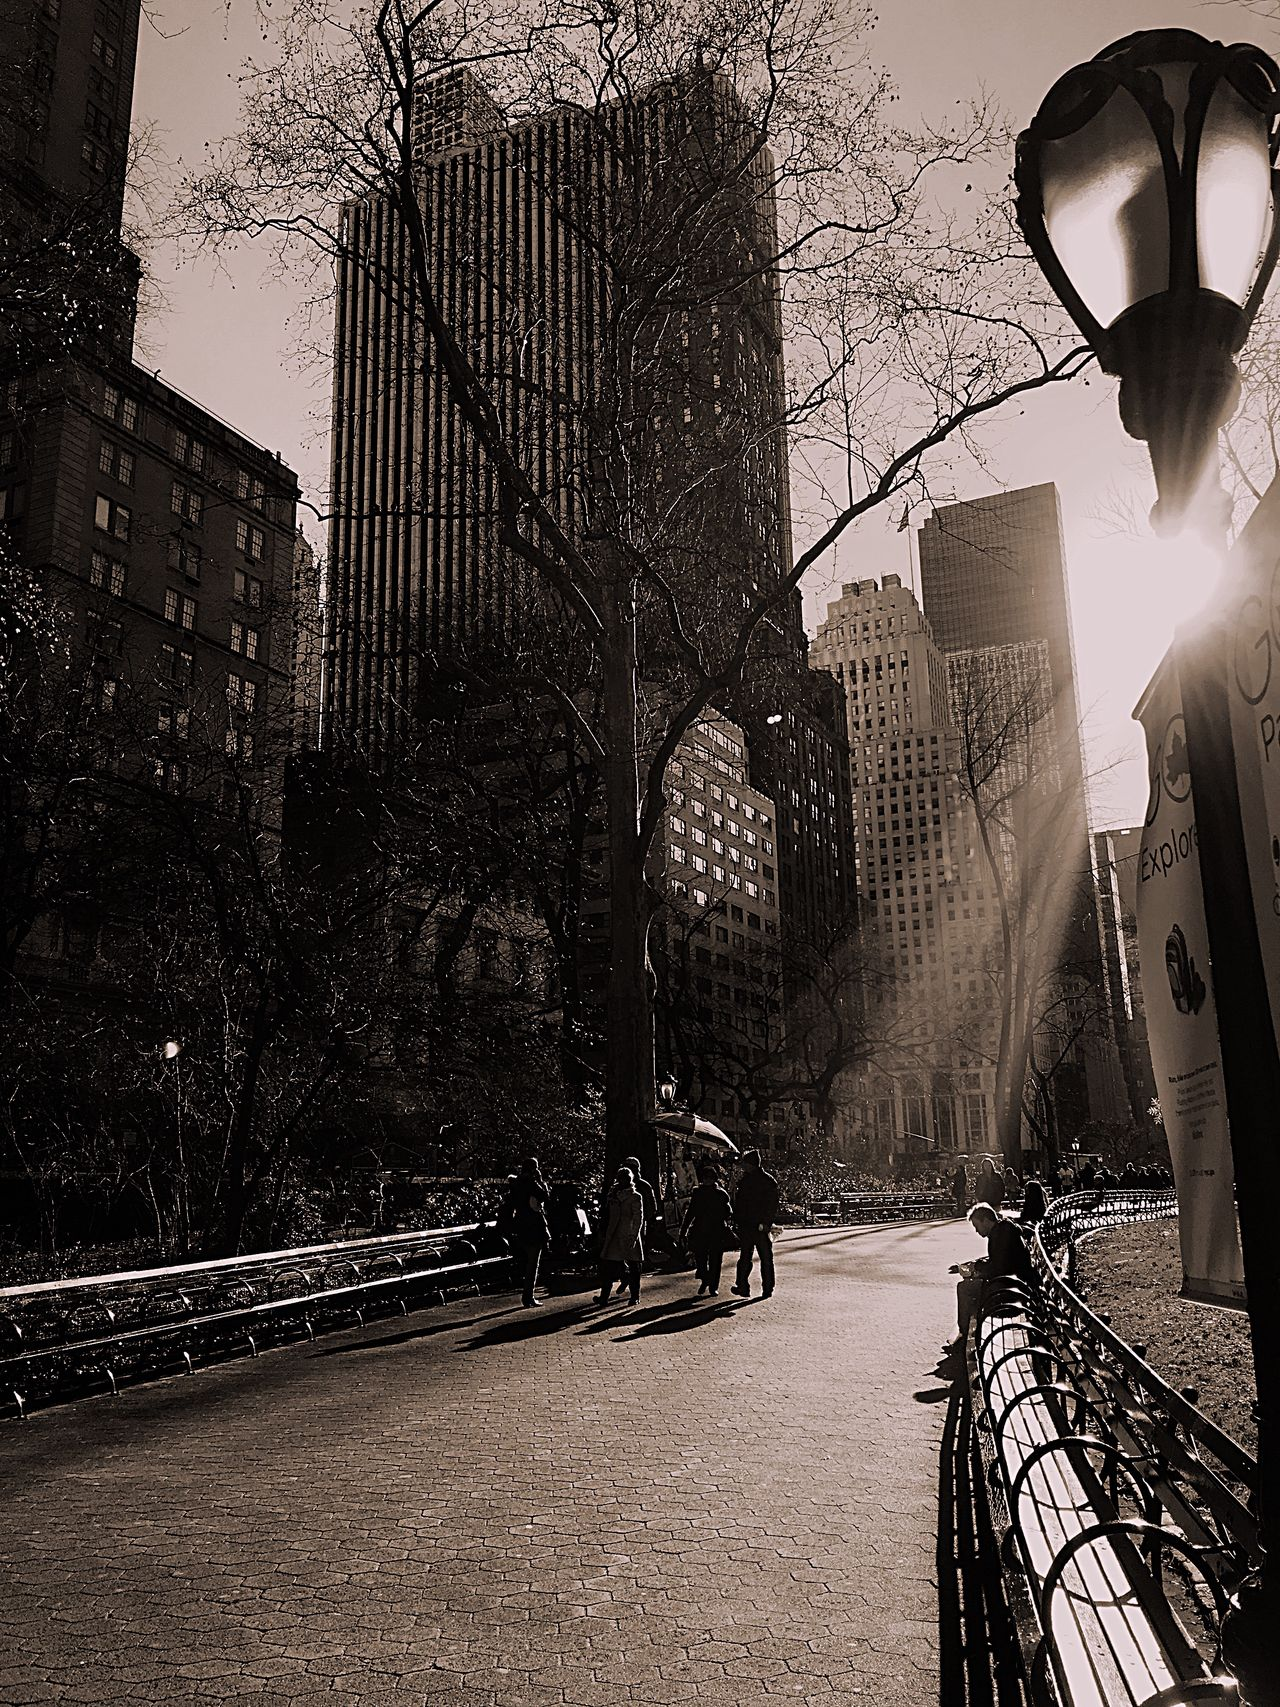 New York Central Park Cold Winter ❄⛄ Beautiful Day Greatest_shots Newyorkcity Blackandwhite Photography Black & White Beautifulcity Lovenewyork Winter Blackandwhitephoto Blackandwite Blancoynegro Black And White Photography